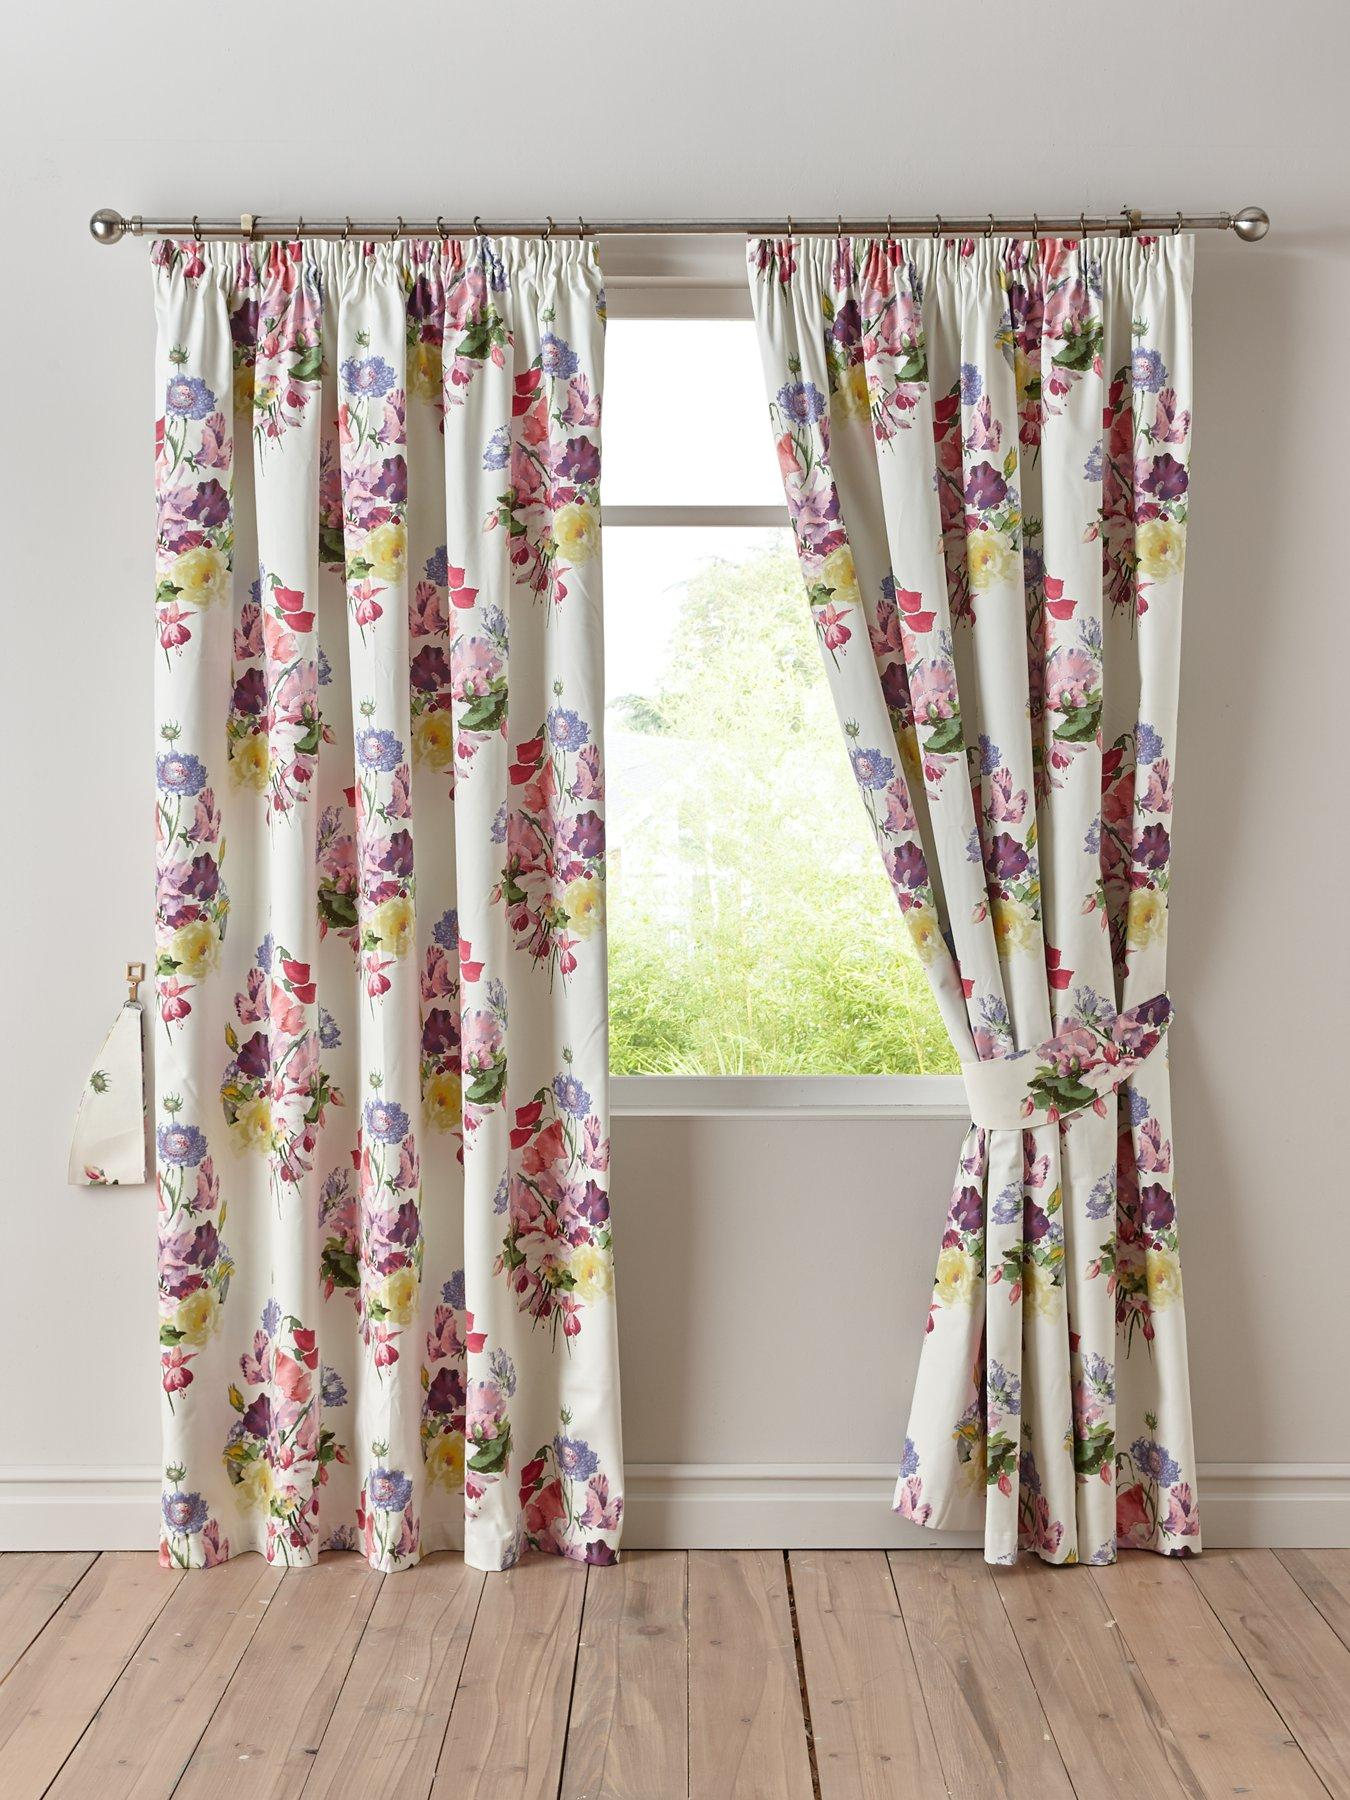 Ready Steady Bed/® Galaxy Design Childrens 66 x 72 Curtain Pair with Tie Backs